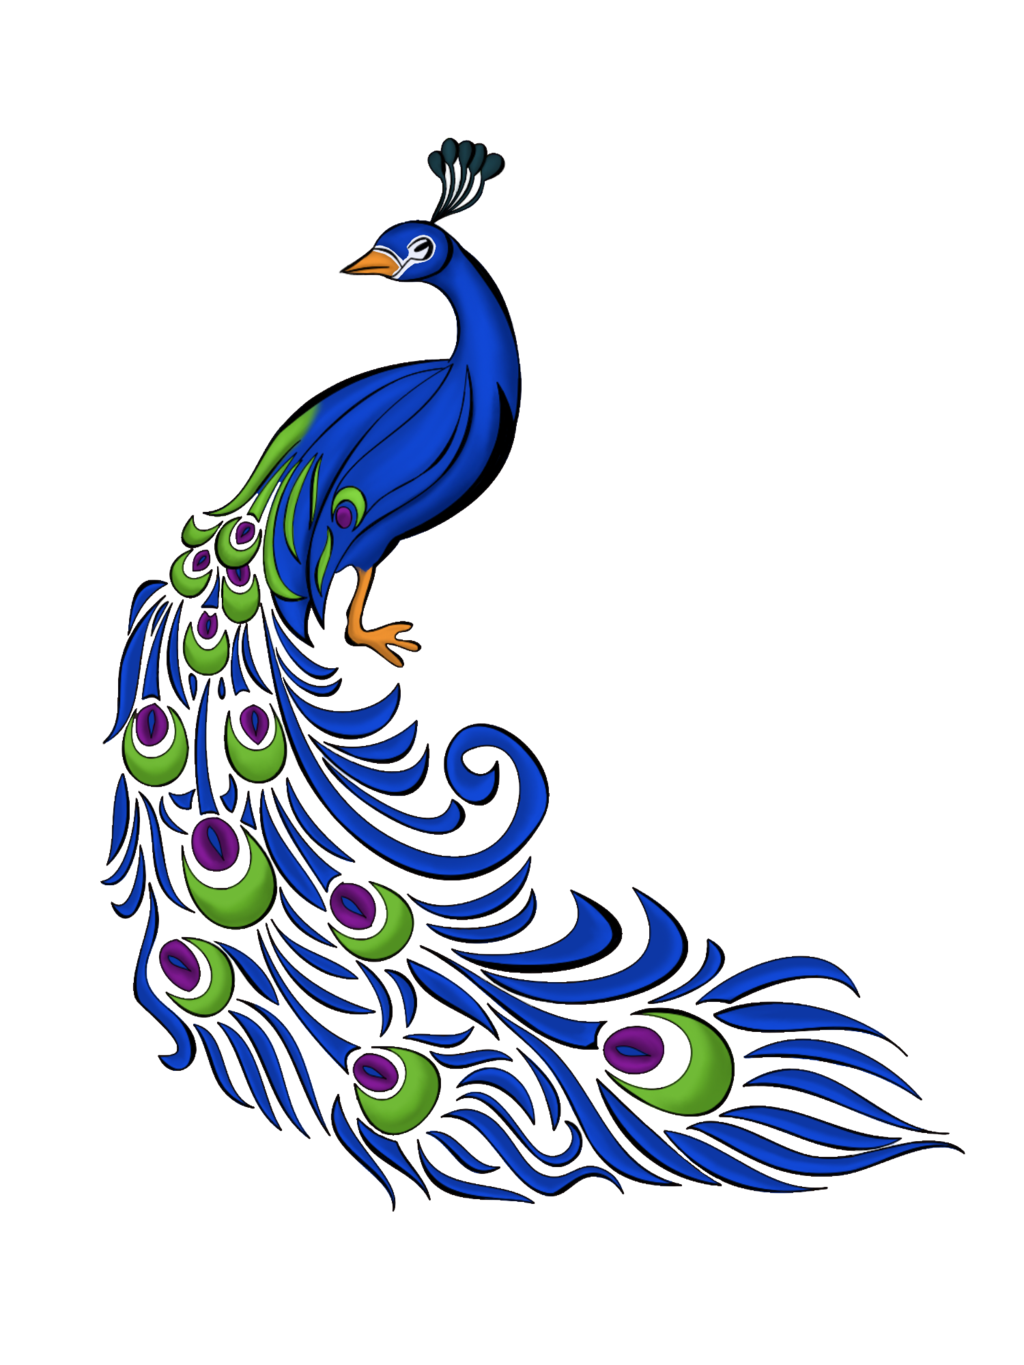 Peacock clipart fotosearch Clipart Images simple%20peacock%20clipart%20black%20and%20white Clipart Panda